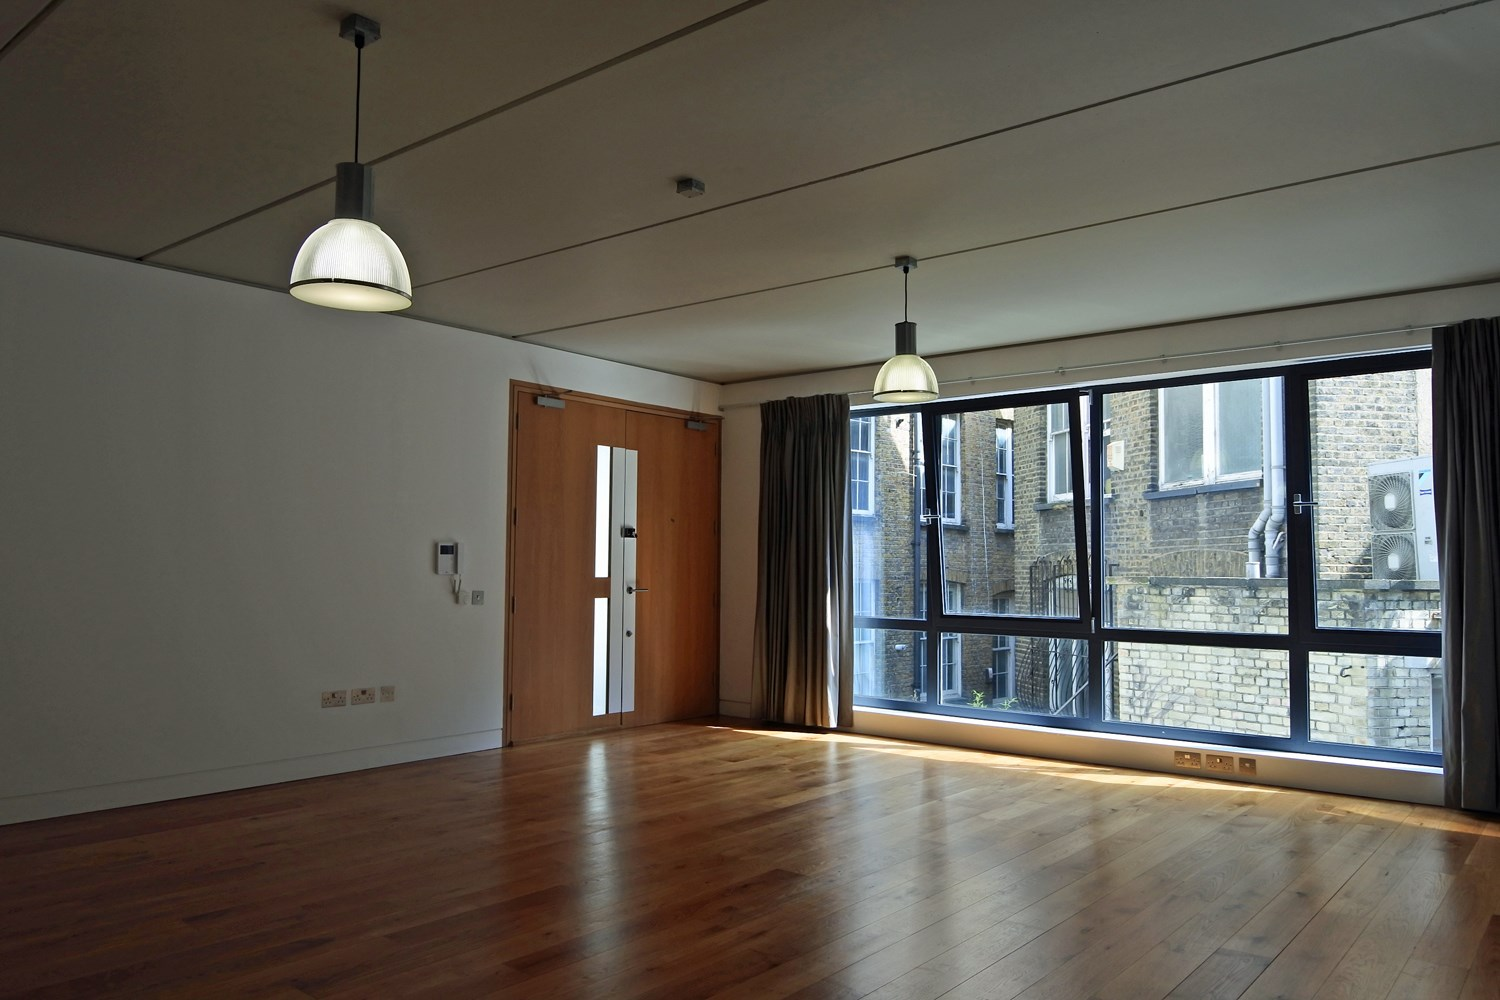 81 Curtain Road Unit D Shoreditch EC2A 3BS Office For Rent Internal5